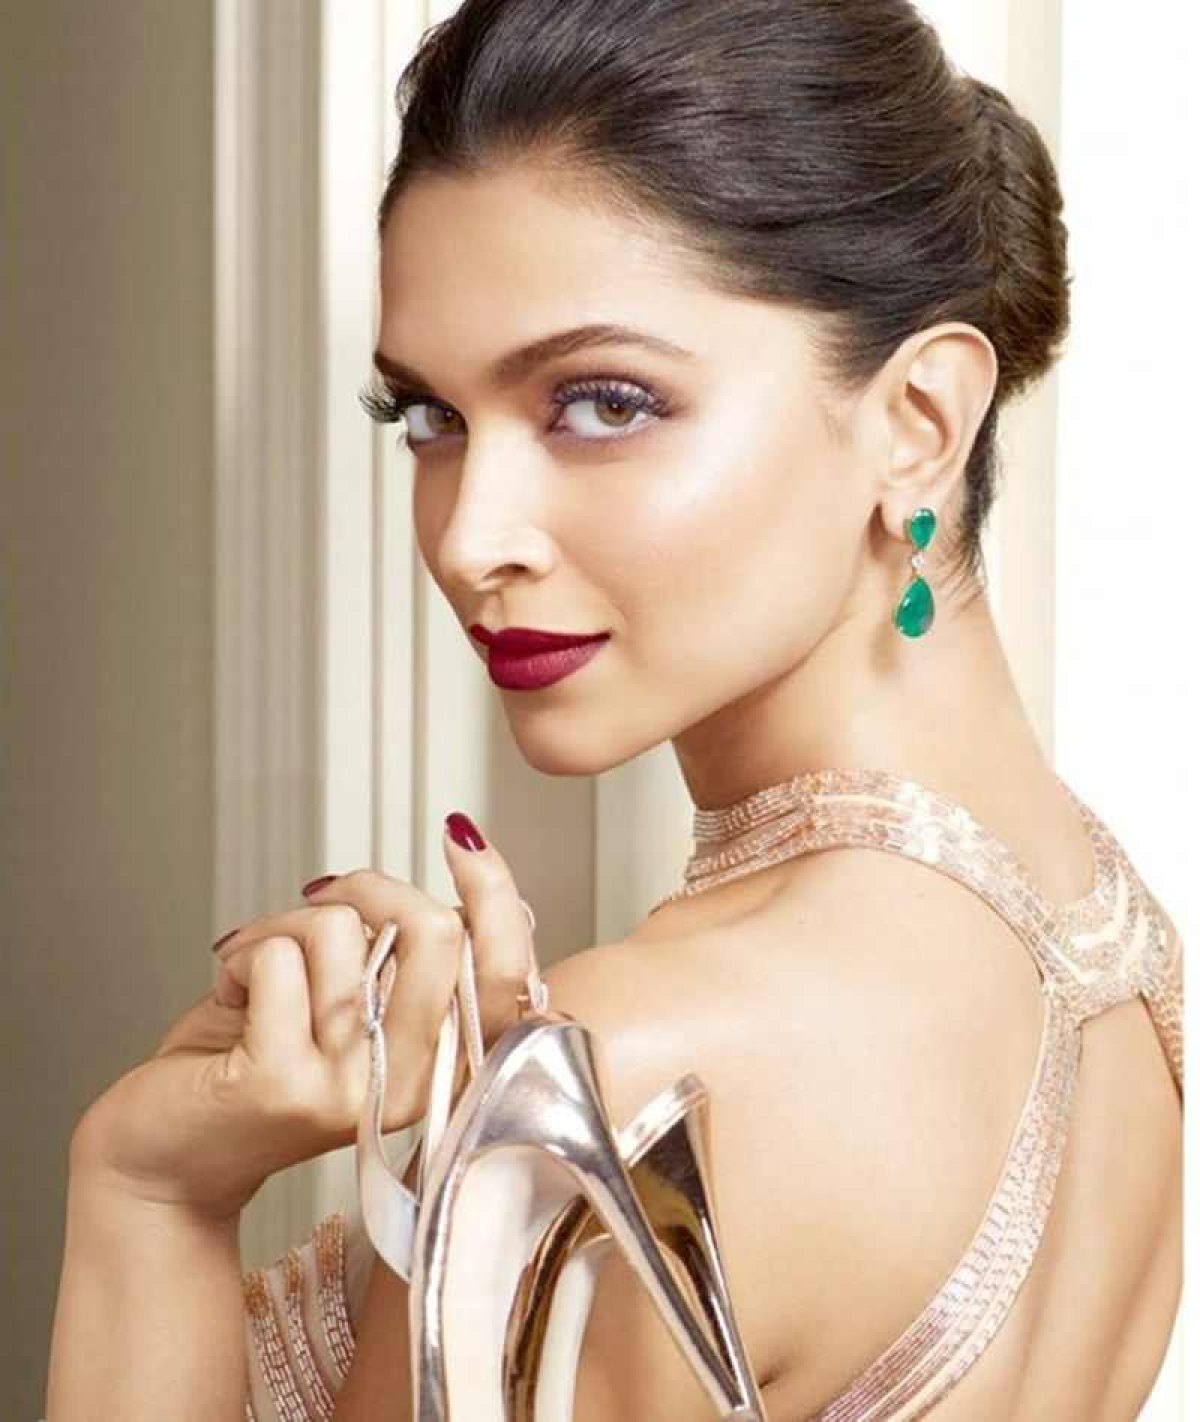 Deepika Padukone is an absolute stunner in Cannes 2017 ad campaign